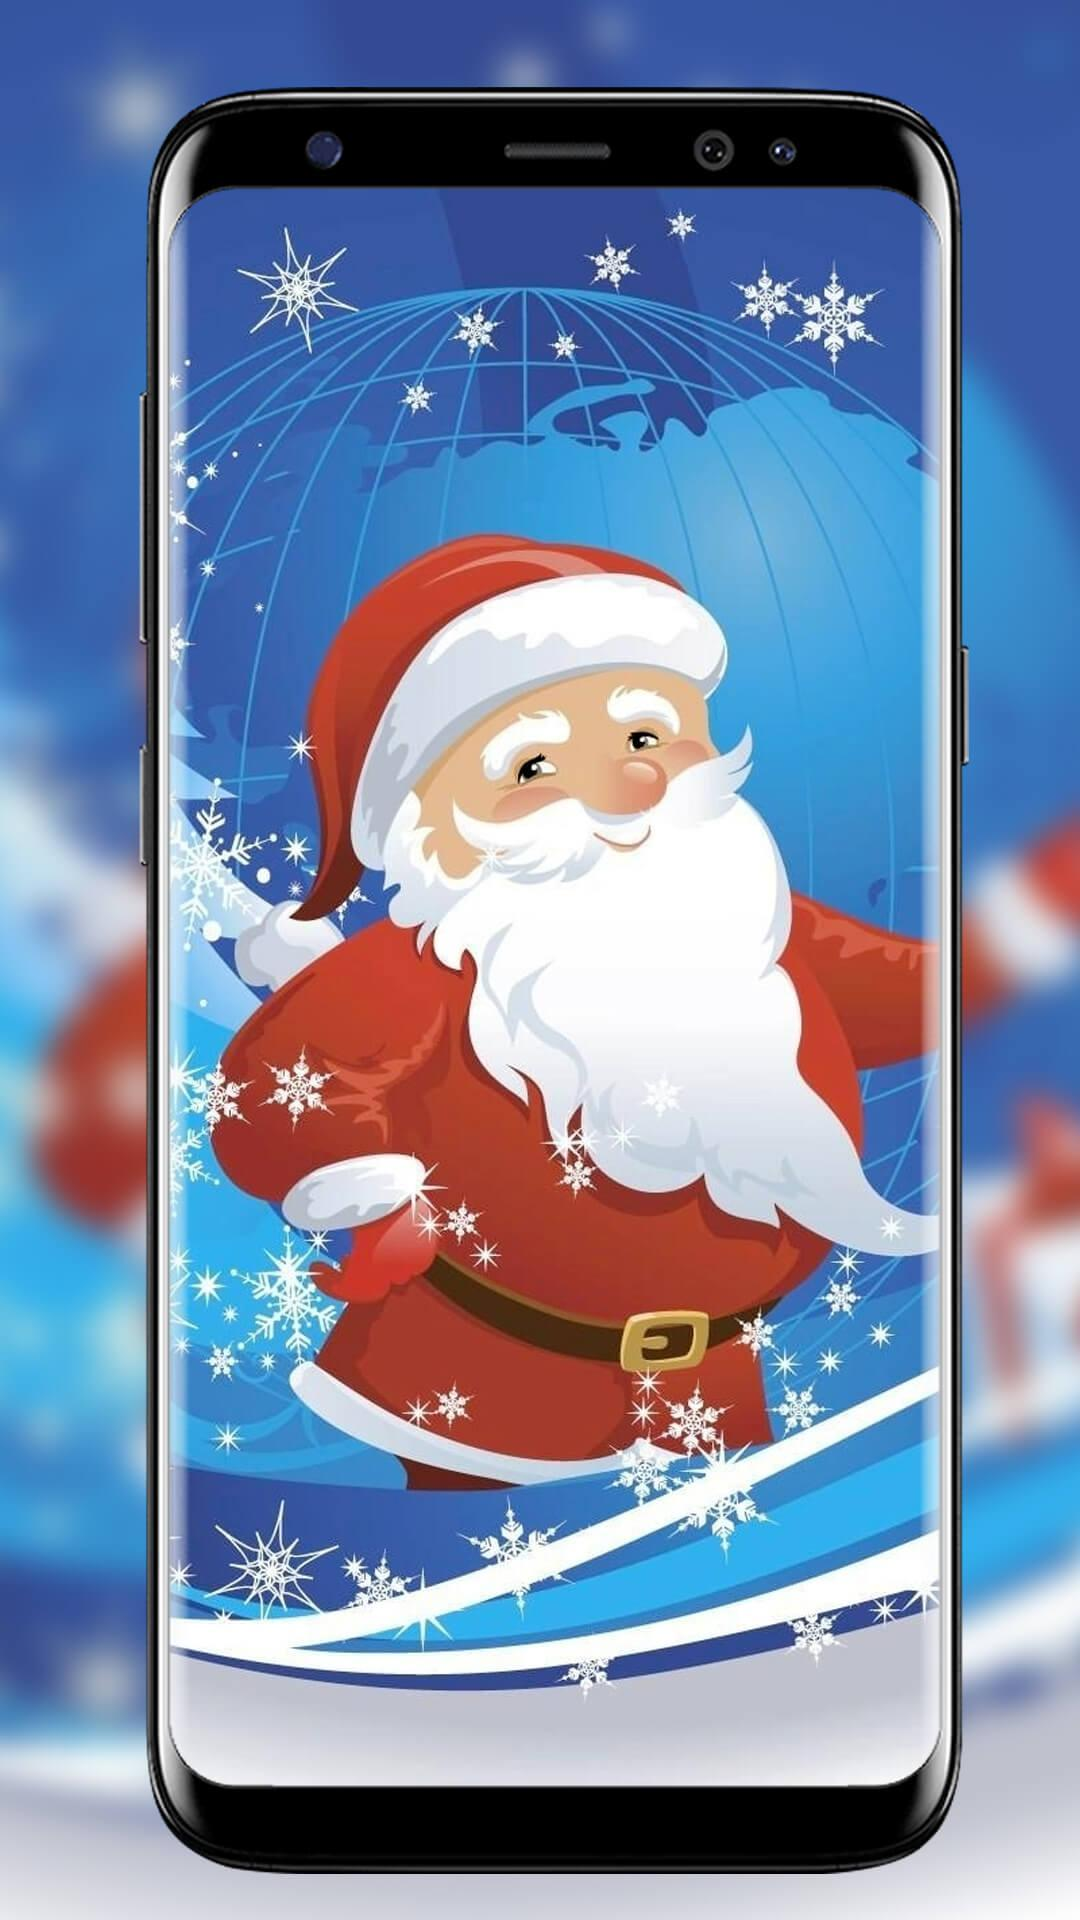 Santa Claus Wallpaper Christmas Backgrounds New For